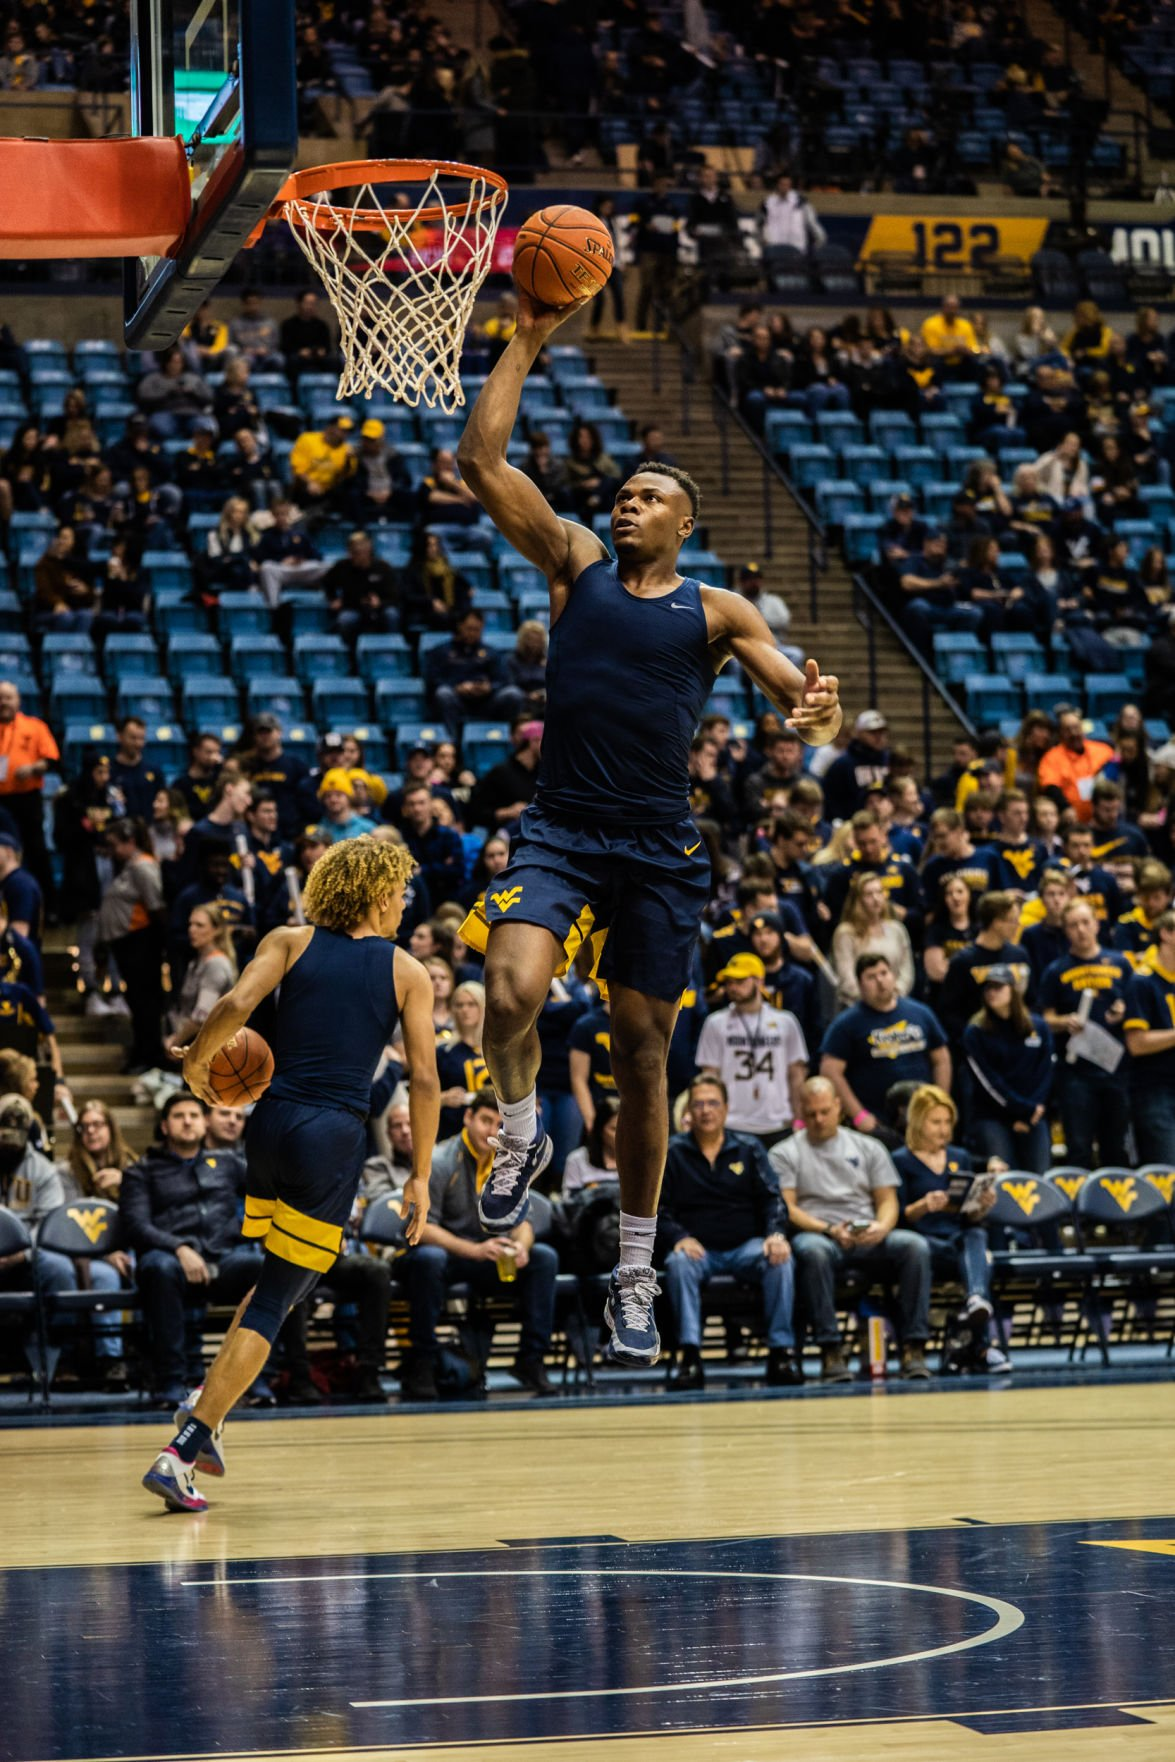 Oscar Tshiebwe goes up for a dunk during warm ups before taking on Kansas State at the WVU Coliseum on Feb. 1, 2020.